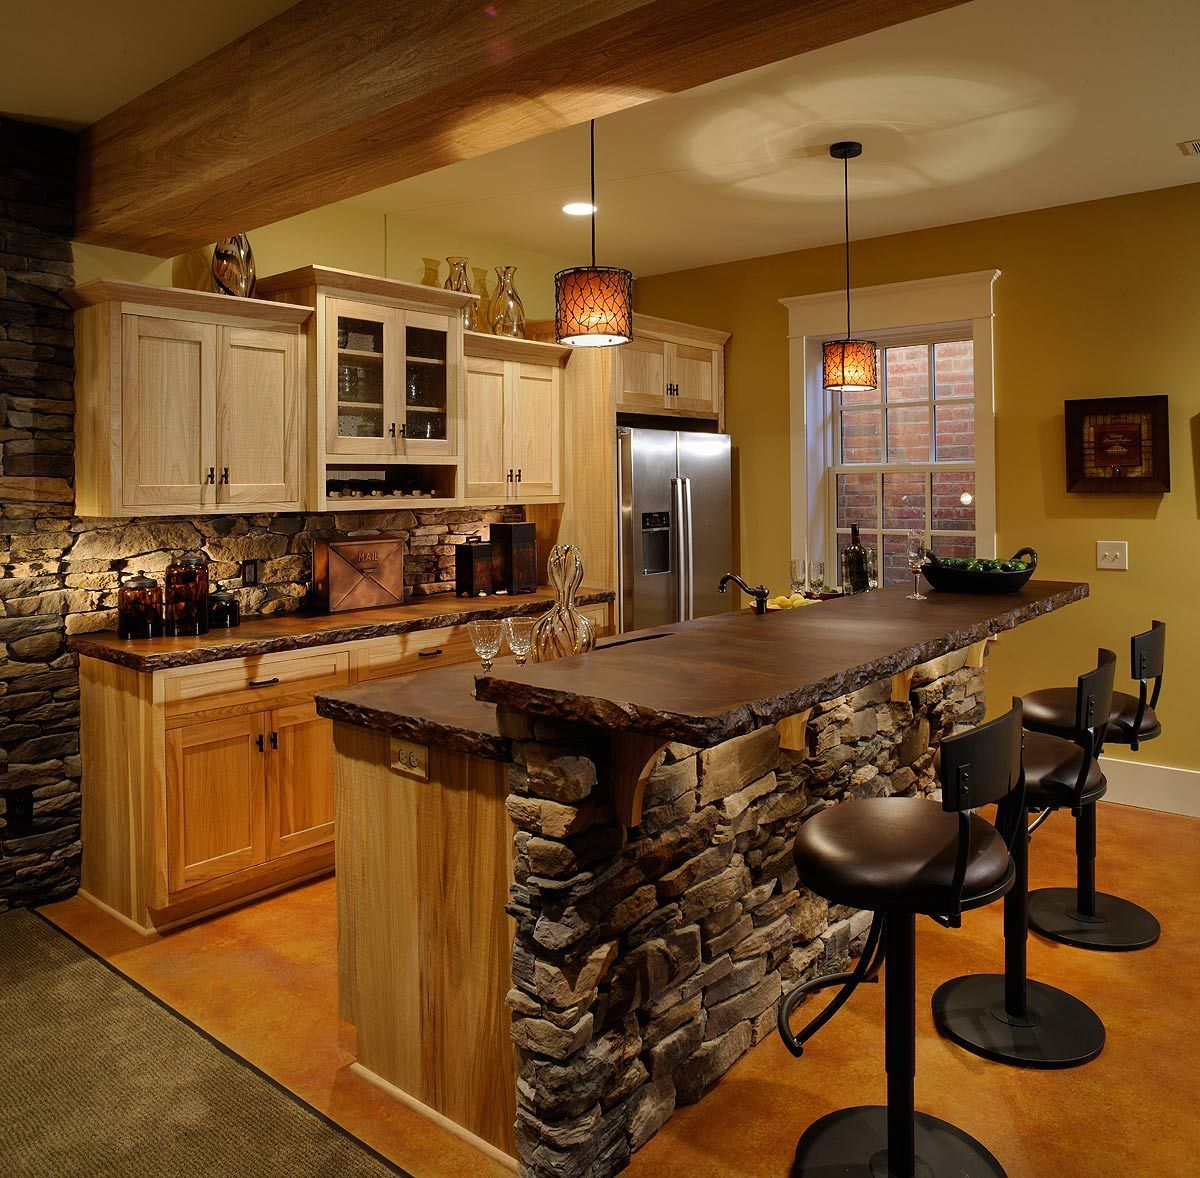 Cabin Country Style Kitchen by Mullet Cabinet in Millersburg, Ohio on country farm kitchen pinterest, country style kitchens on pinterest, country green kitchen pinterest, country primitive home decorating ideas,